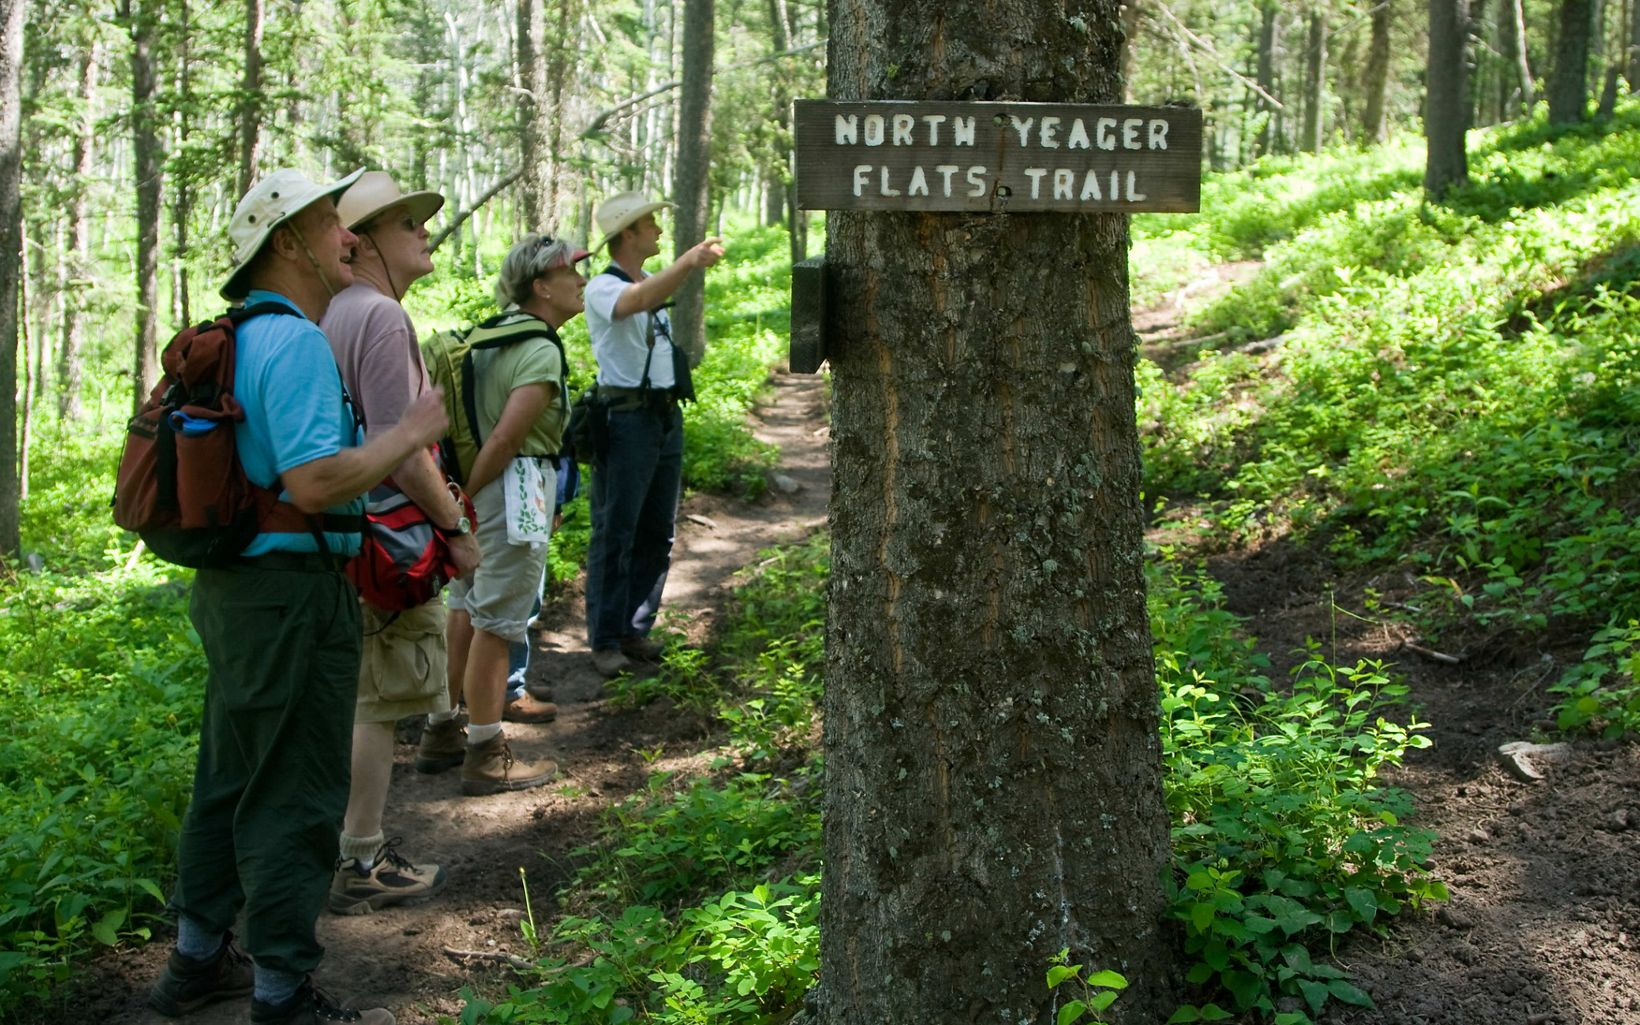 Members of the Conservancy's Legacy Club spend an afternoon hiking to Yeager Flats during their week-long trip to TNC's Pine Butte Guest Ranch in Montana.